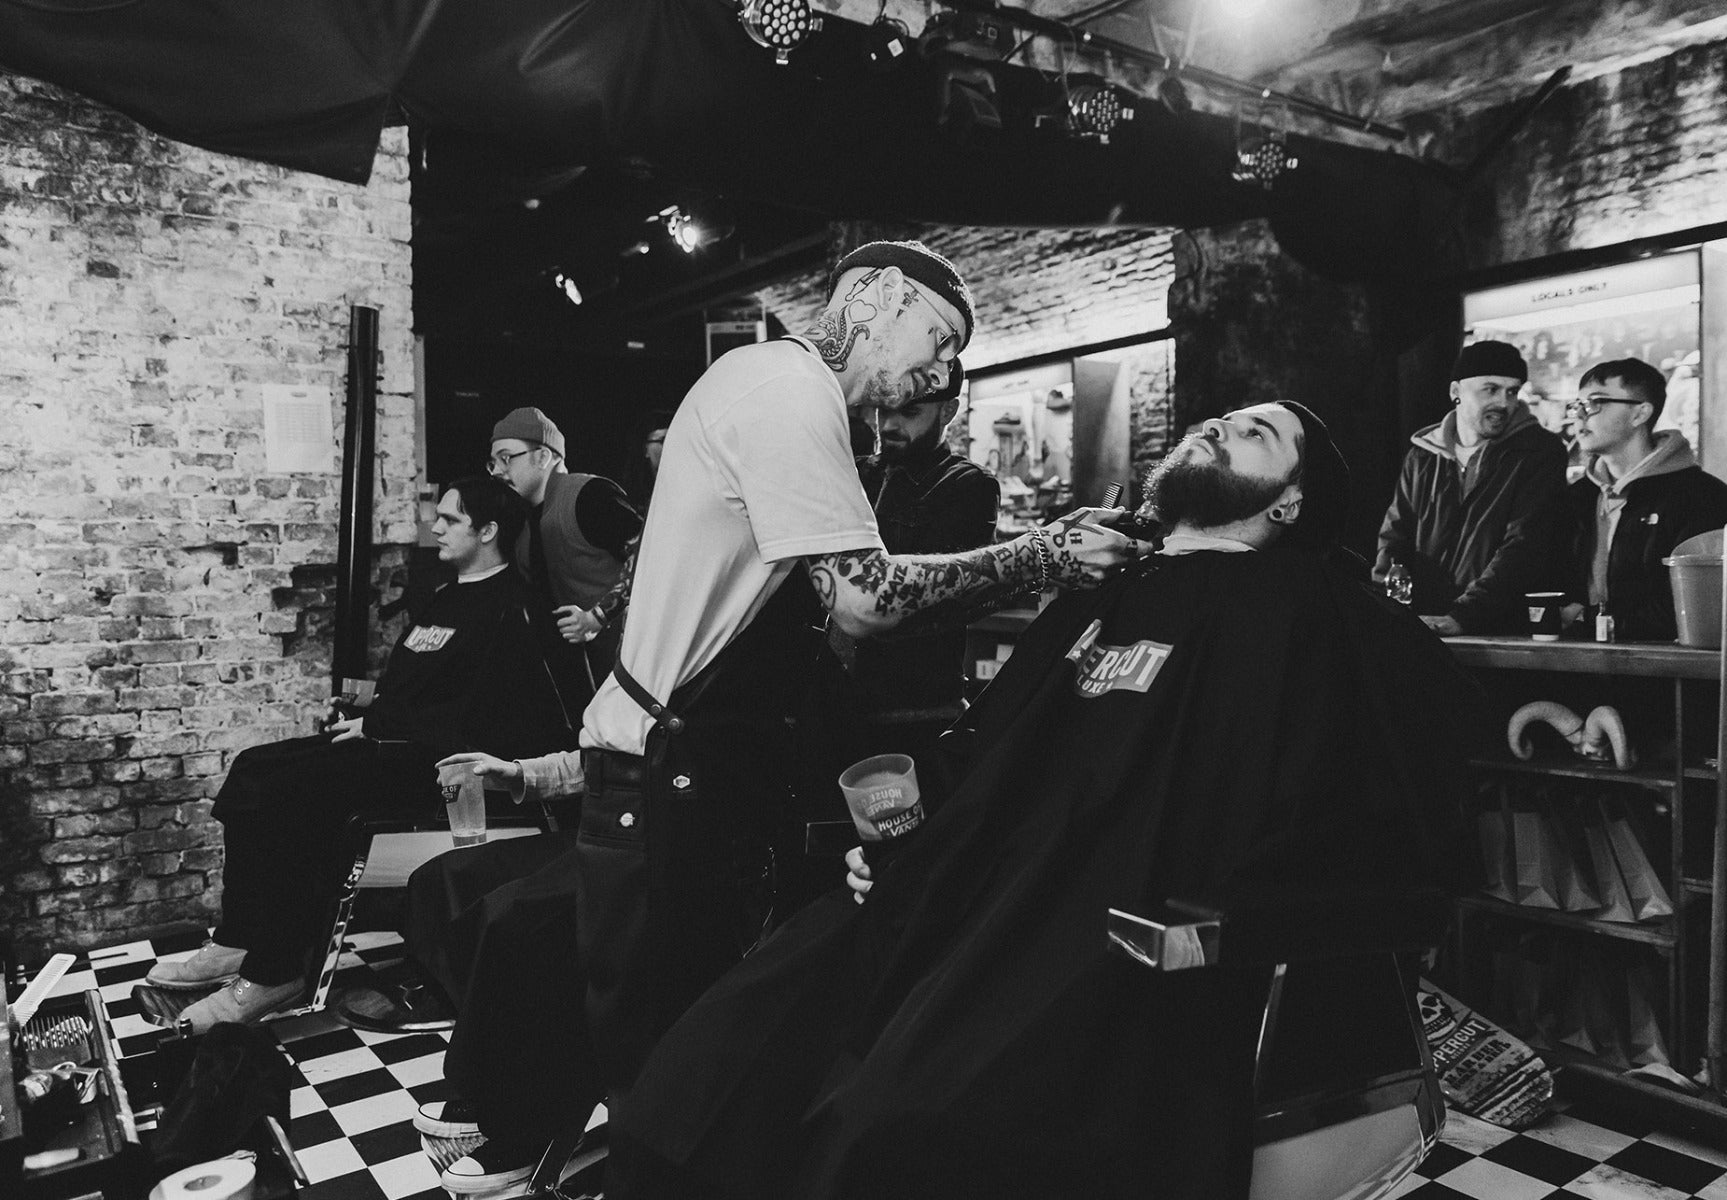 Man getting beard trim